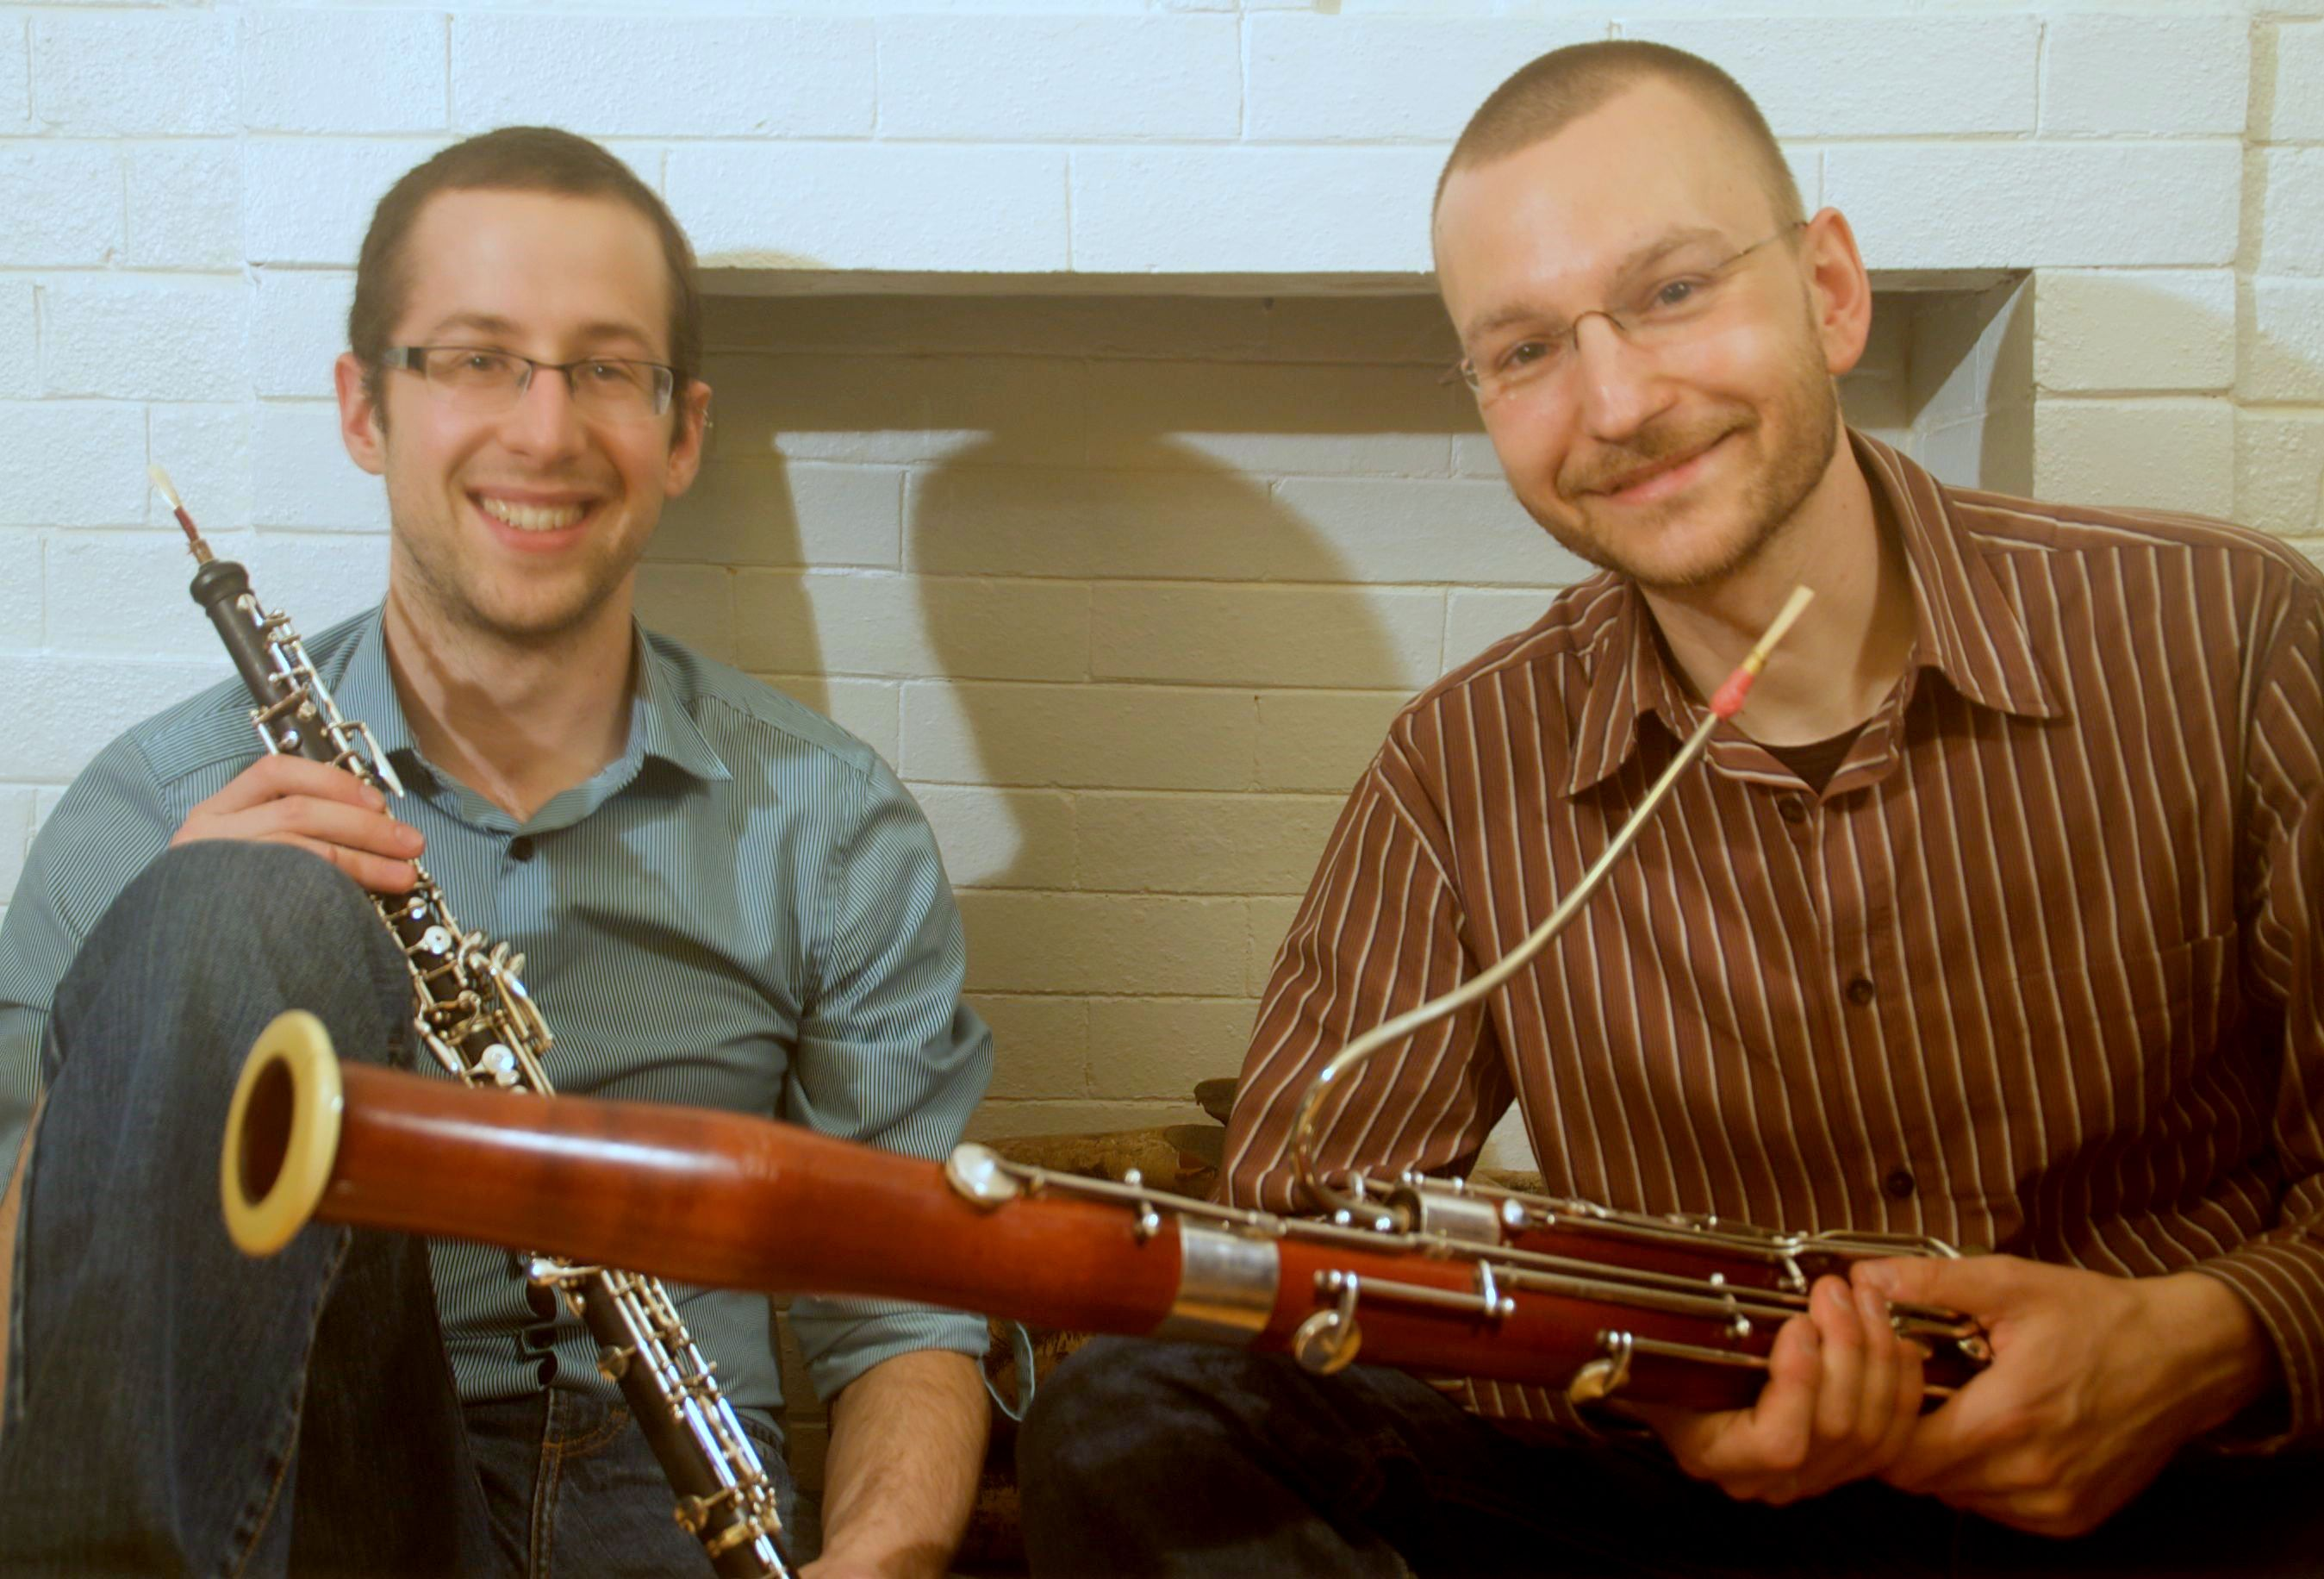 oboe college scholarships The oboe faculty has designed a comprehensive curriculum, covering orchestral,  solo, and étude repertoire, as well as reed making, oboe repair, and training on.